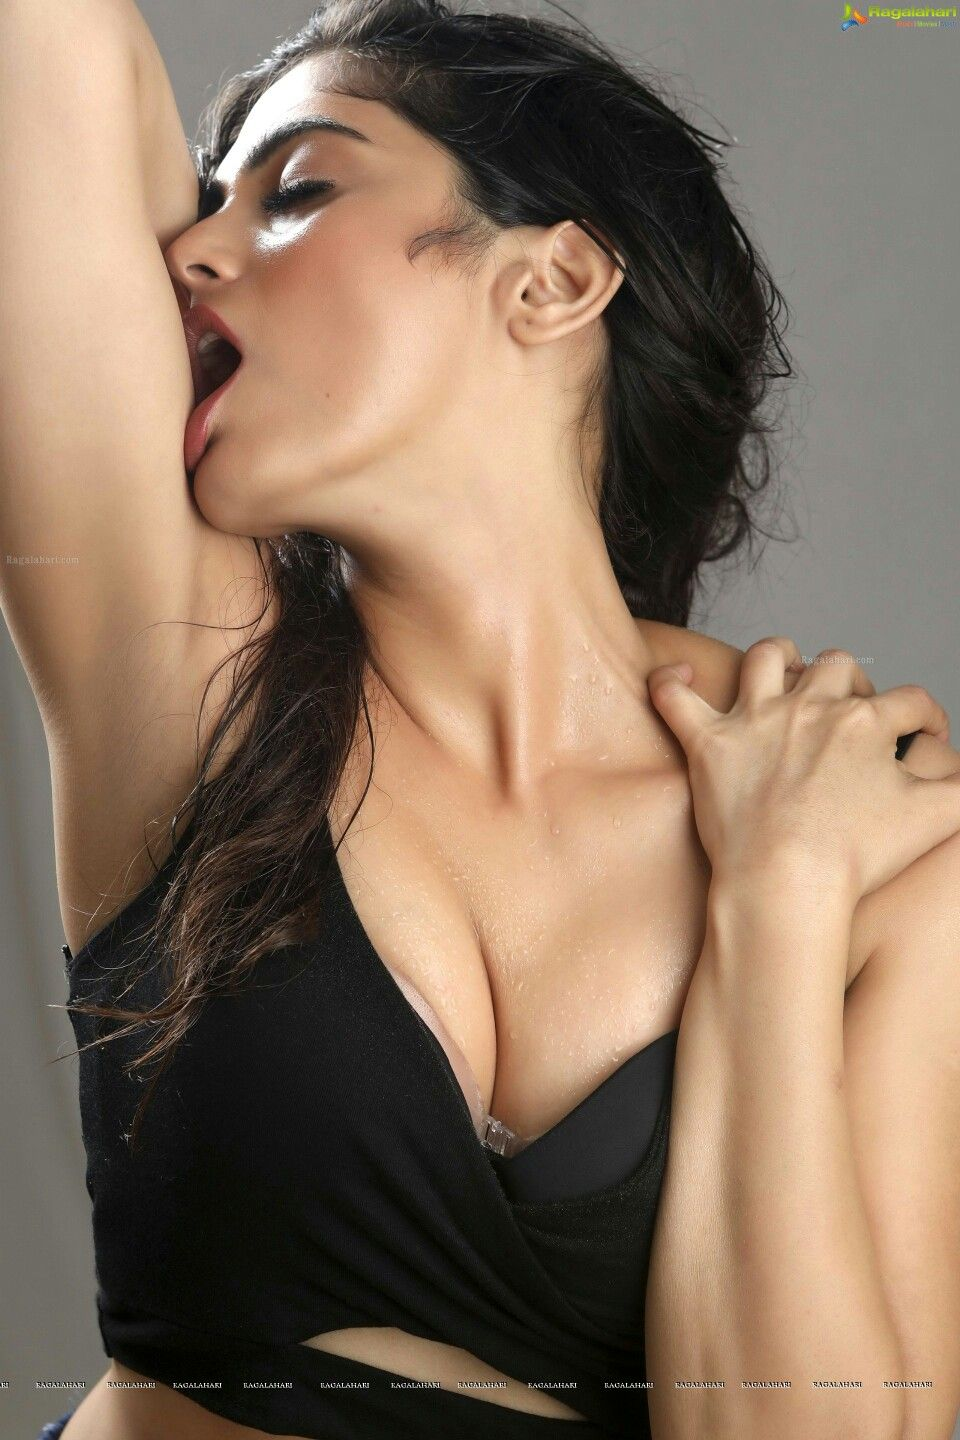 naina ganguly@dam hot | south stuff | pinterest | india beauty